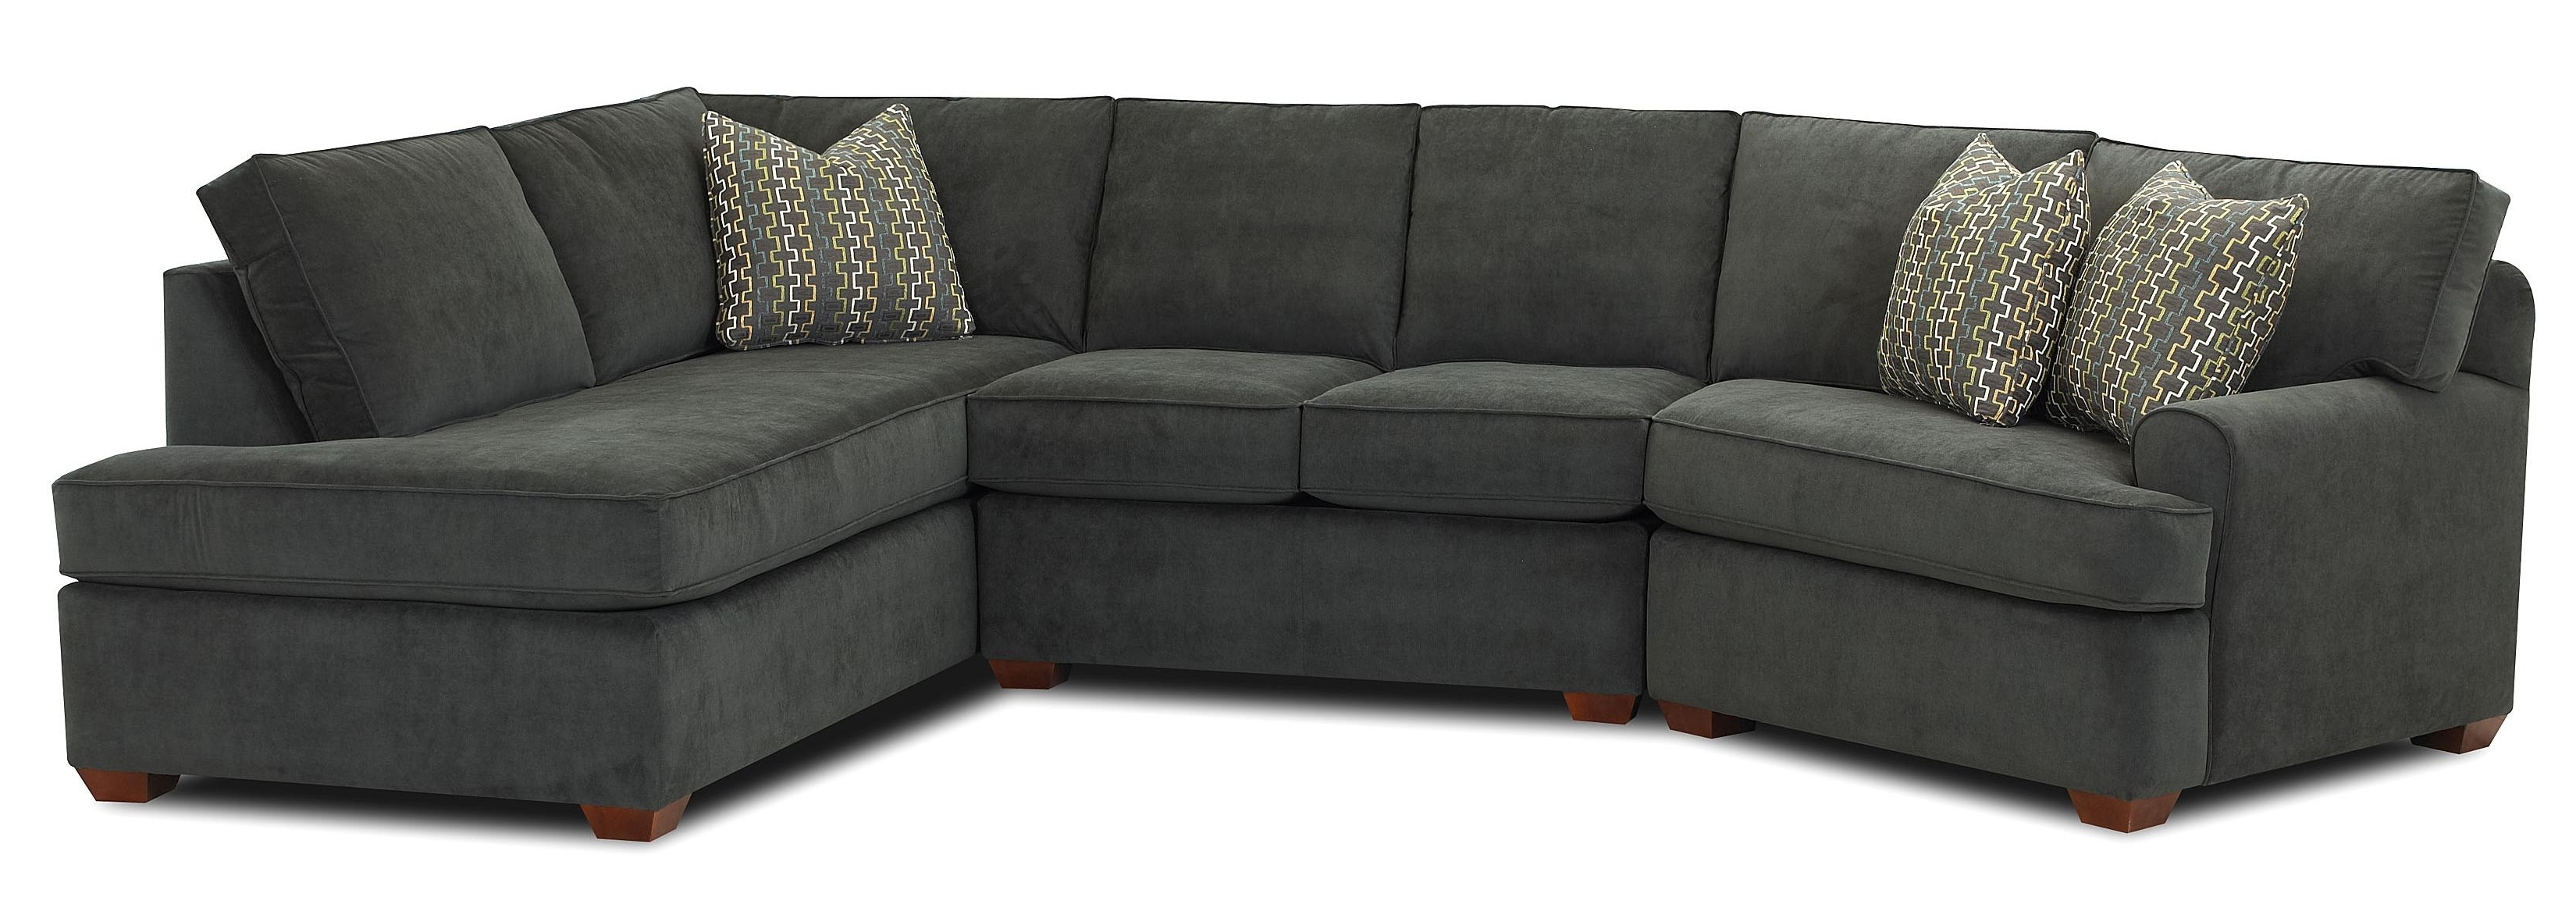 Sectional Sofas With Chaise With Fashionable Sectional Sofa With Right Facing Sofa Chaiseklaussner (View 6 of 20)